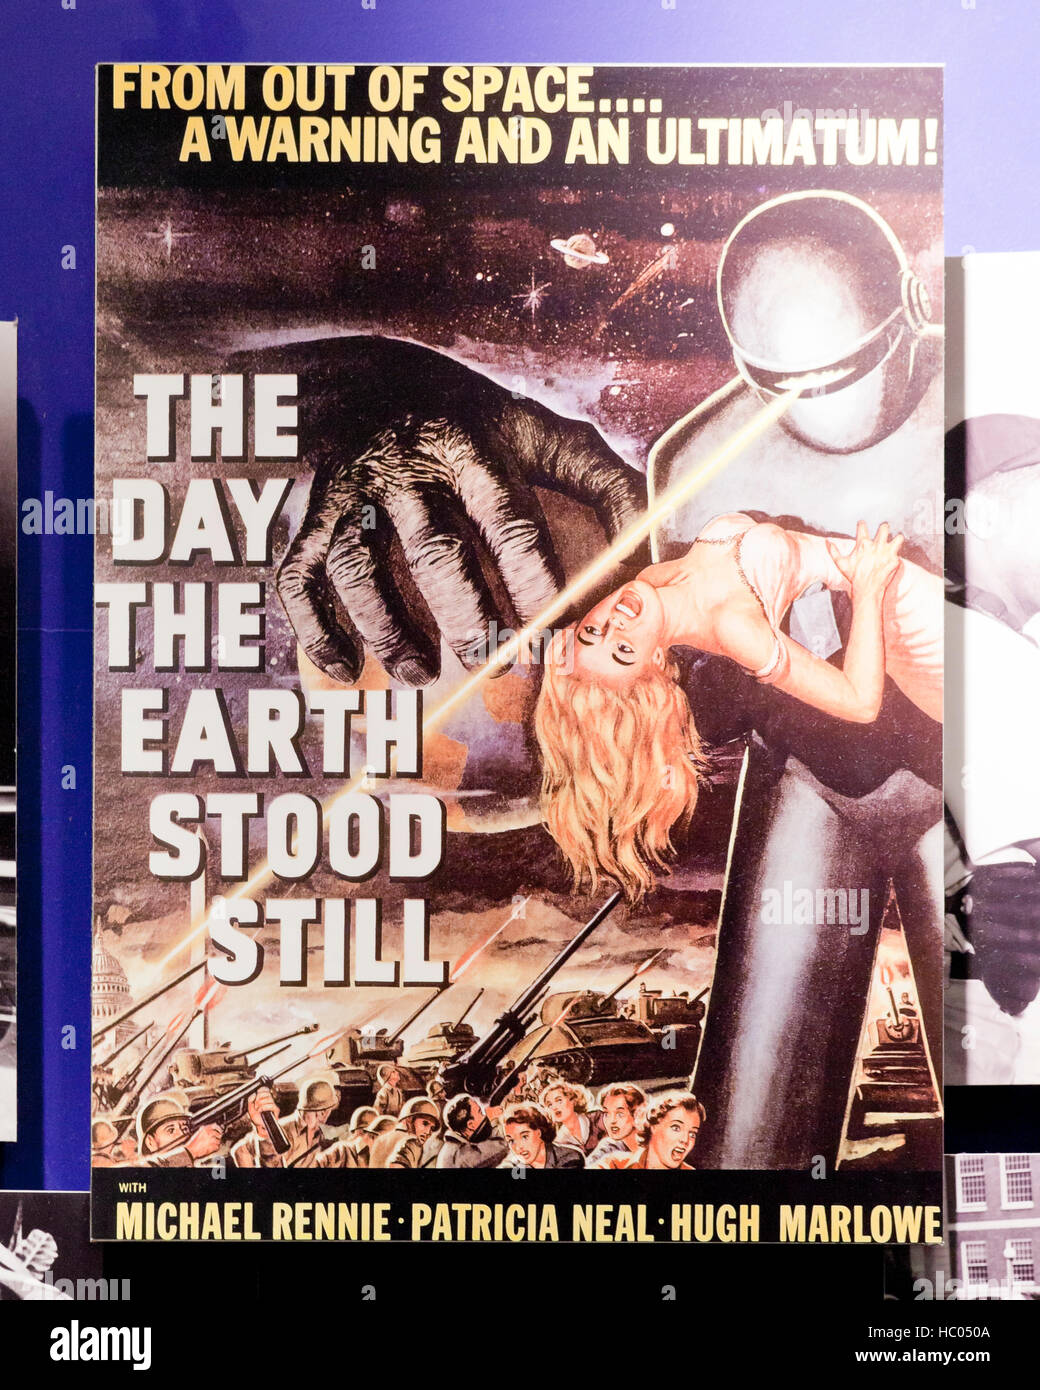 'The Day the Earth Stood Still' movie poster - USA - Stock Image